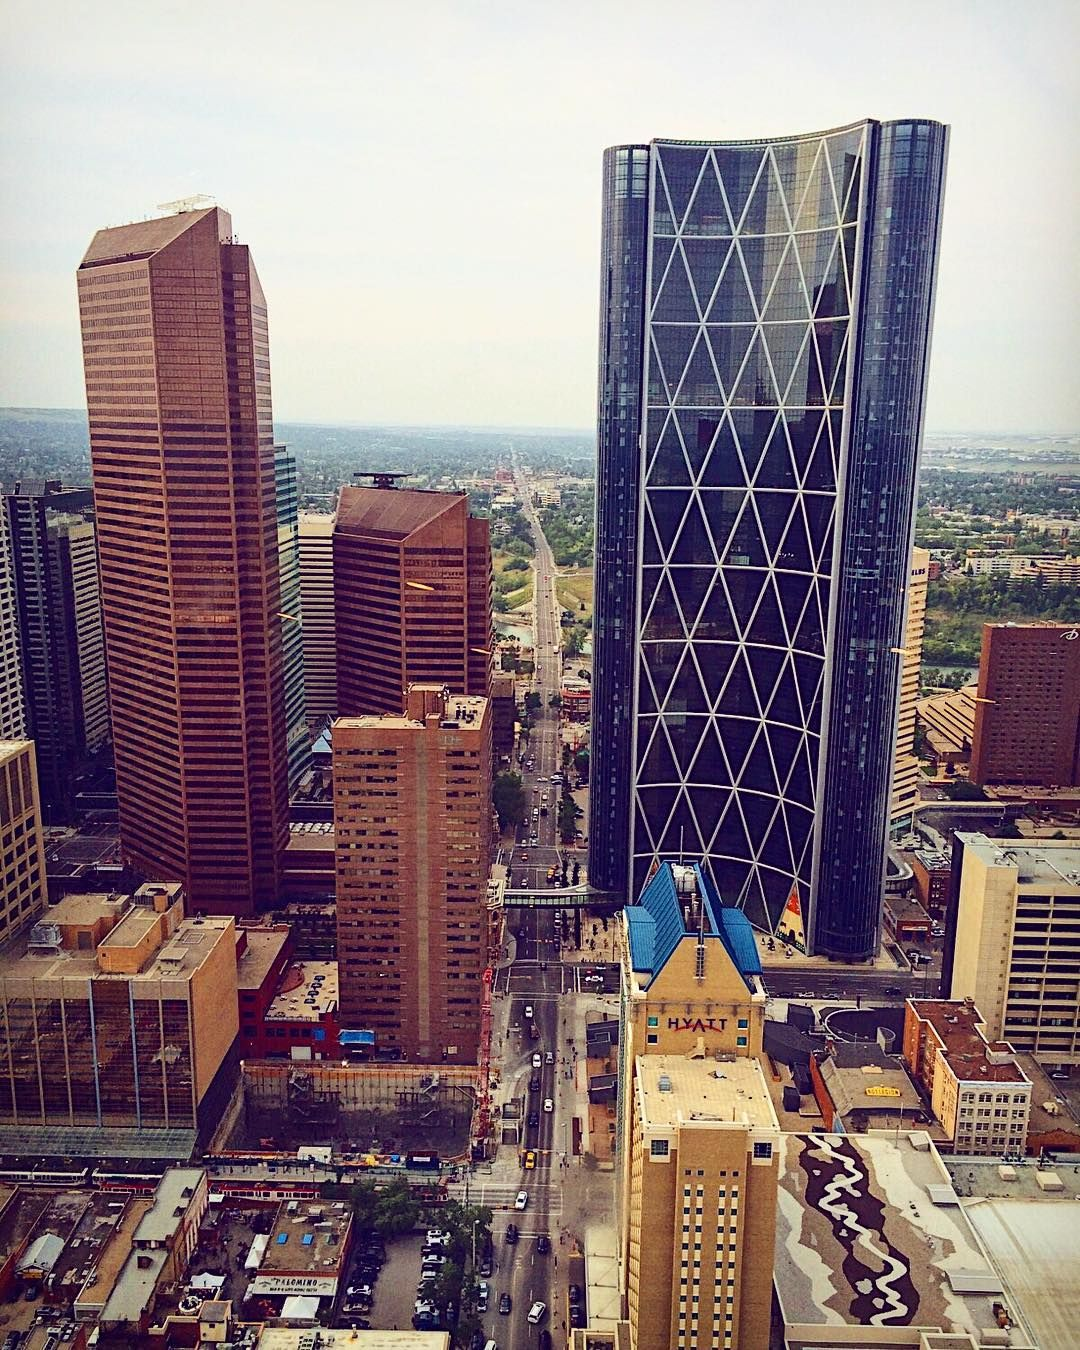 The weekend begins ���� ••• ••• ••• #yyc #travel #travelalberta #calgary #architecture #architecturephotography #archdaily #architecturelovers #landscape #landscapephotography #vsco #vscocam #nikon #nikond750 #nikonphotography #justgoshoot #streetview #streetscape #cityscape #beauxarche http://tipsrazzi.com/ipost/1513463832289555033/?code=BUA51Y4BTJZ